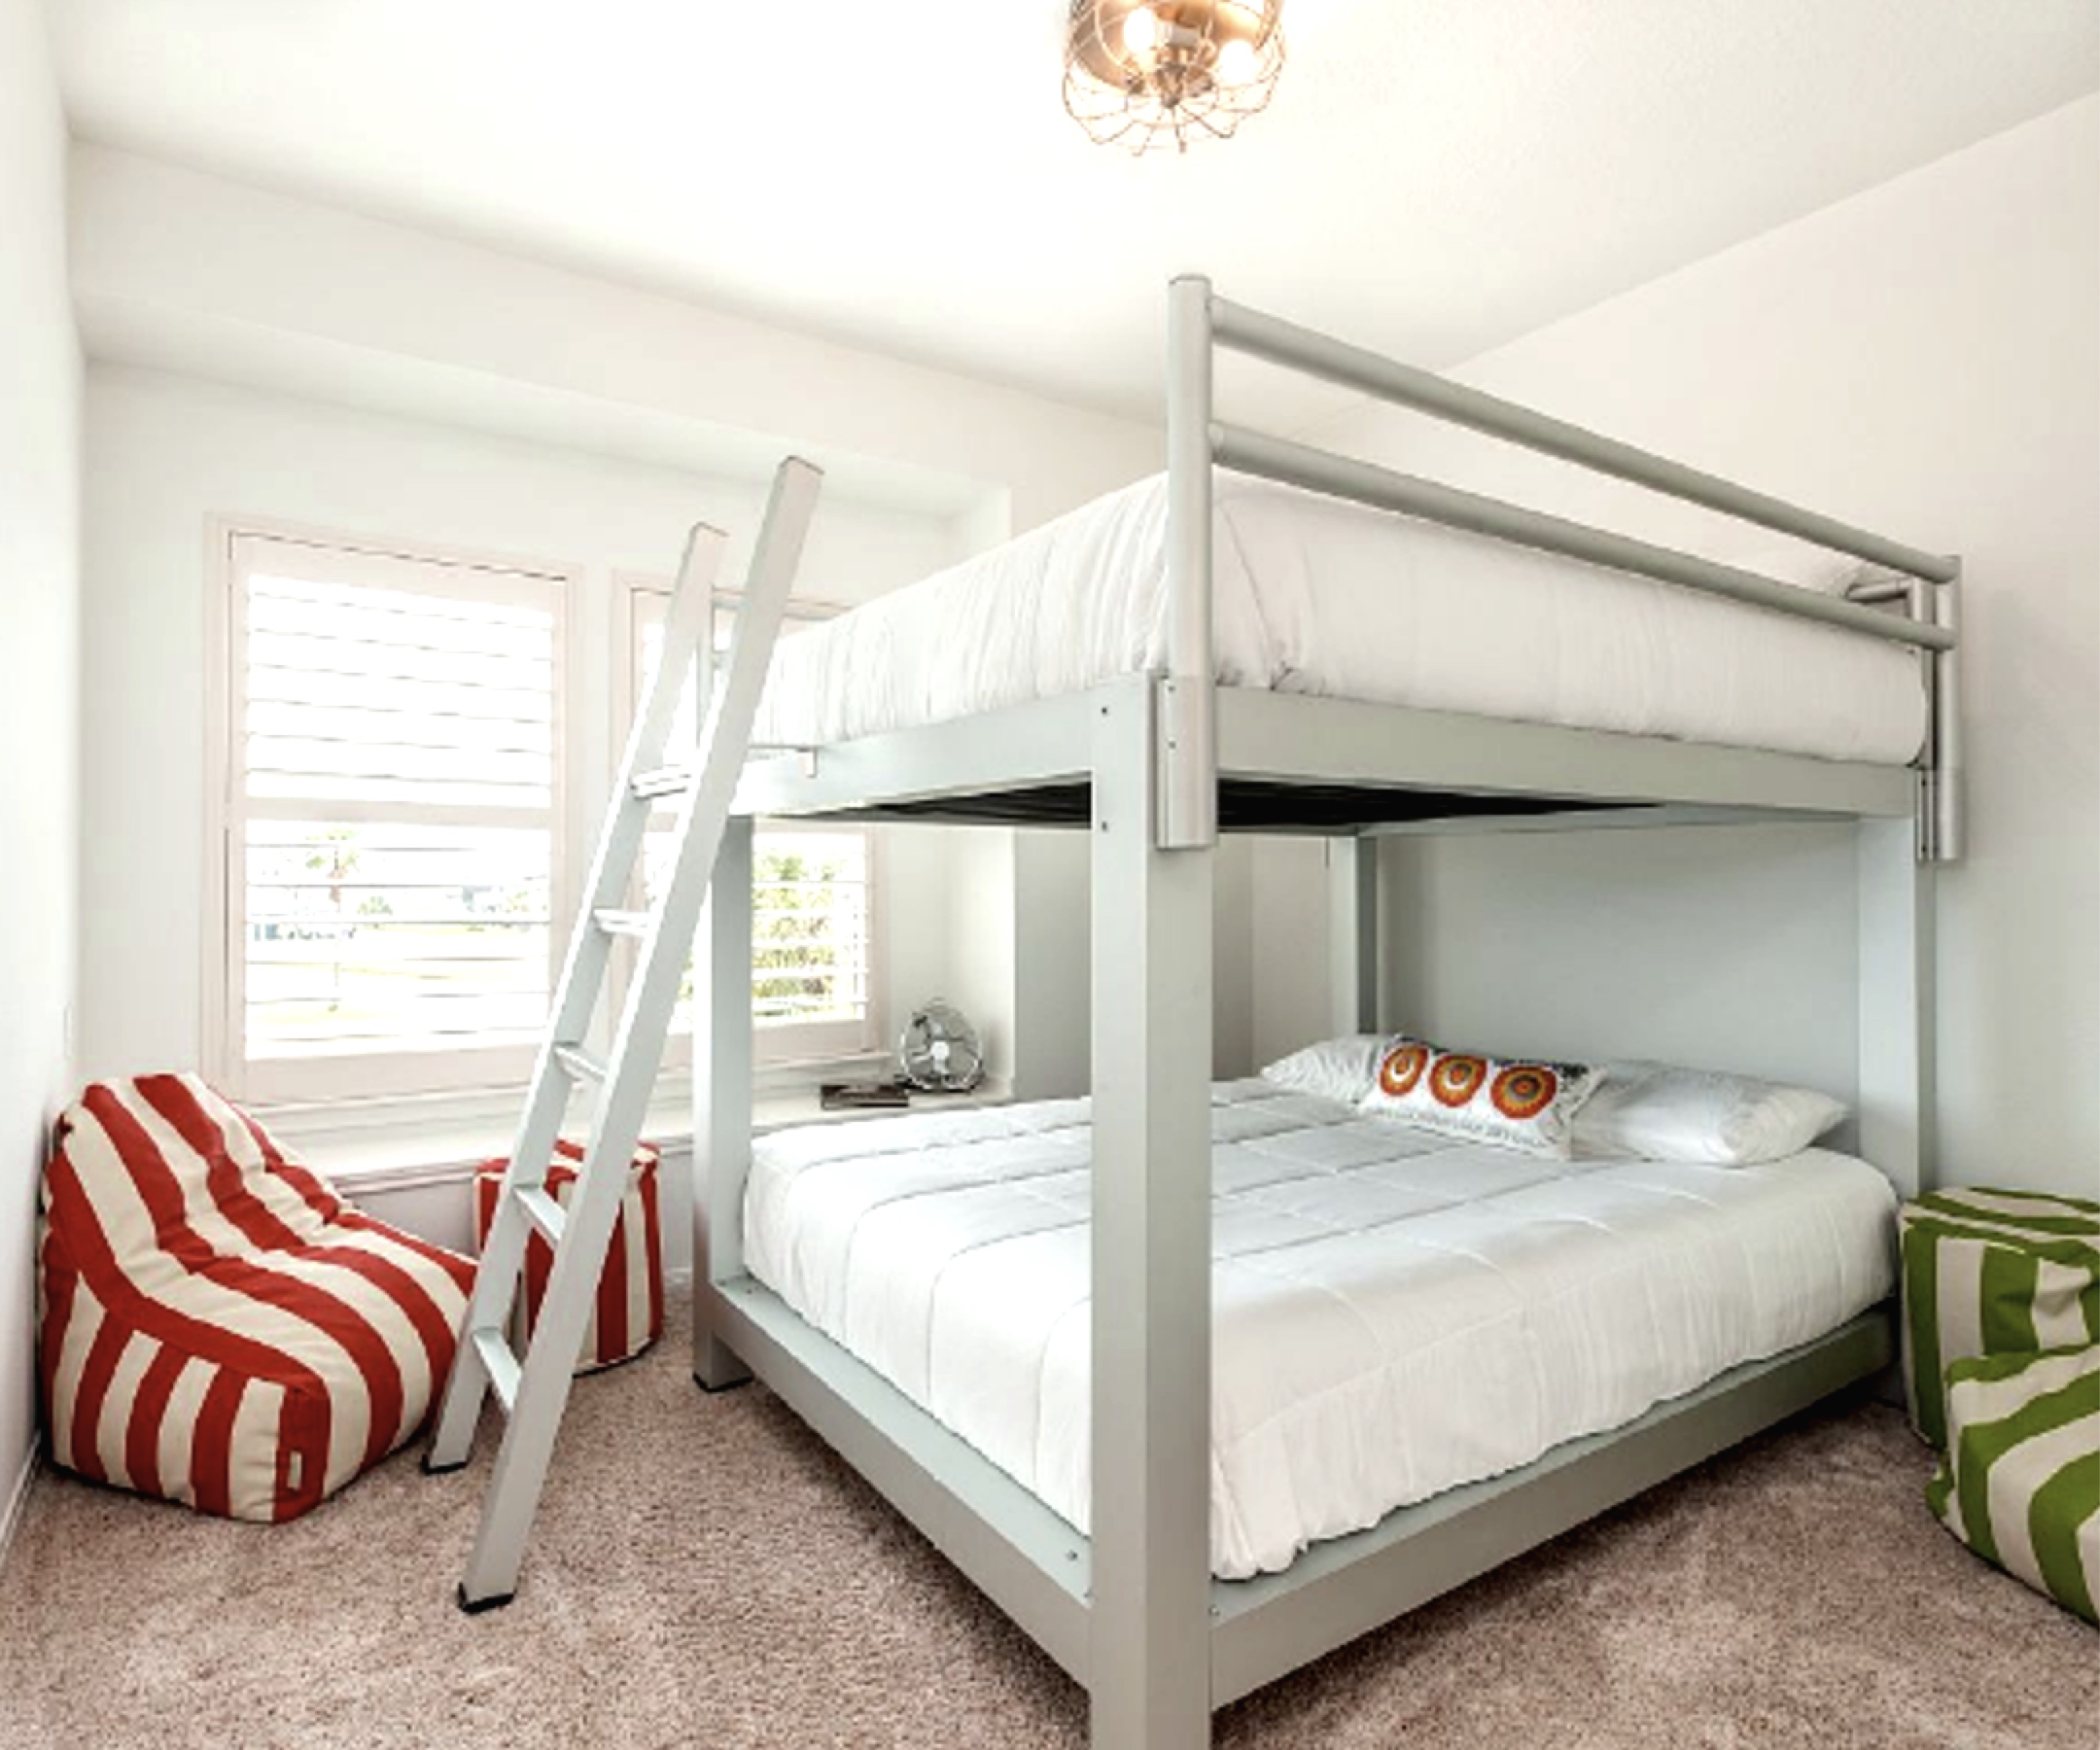 9 Bunk Bed Safety Tips Adultbunkbeds Com